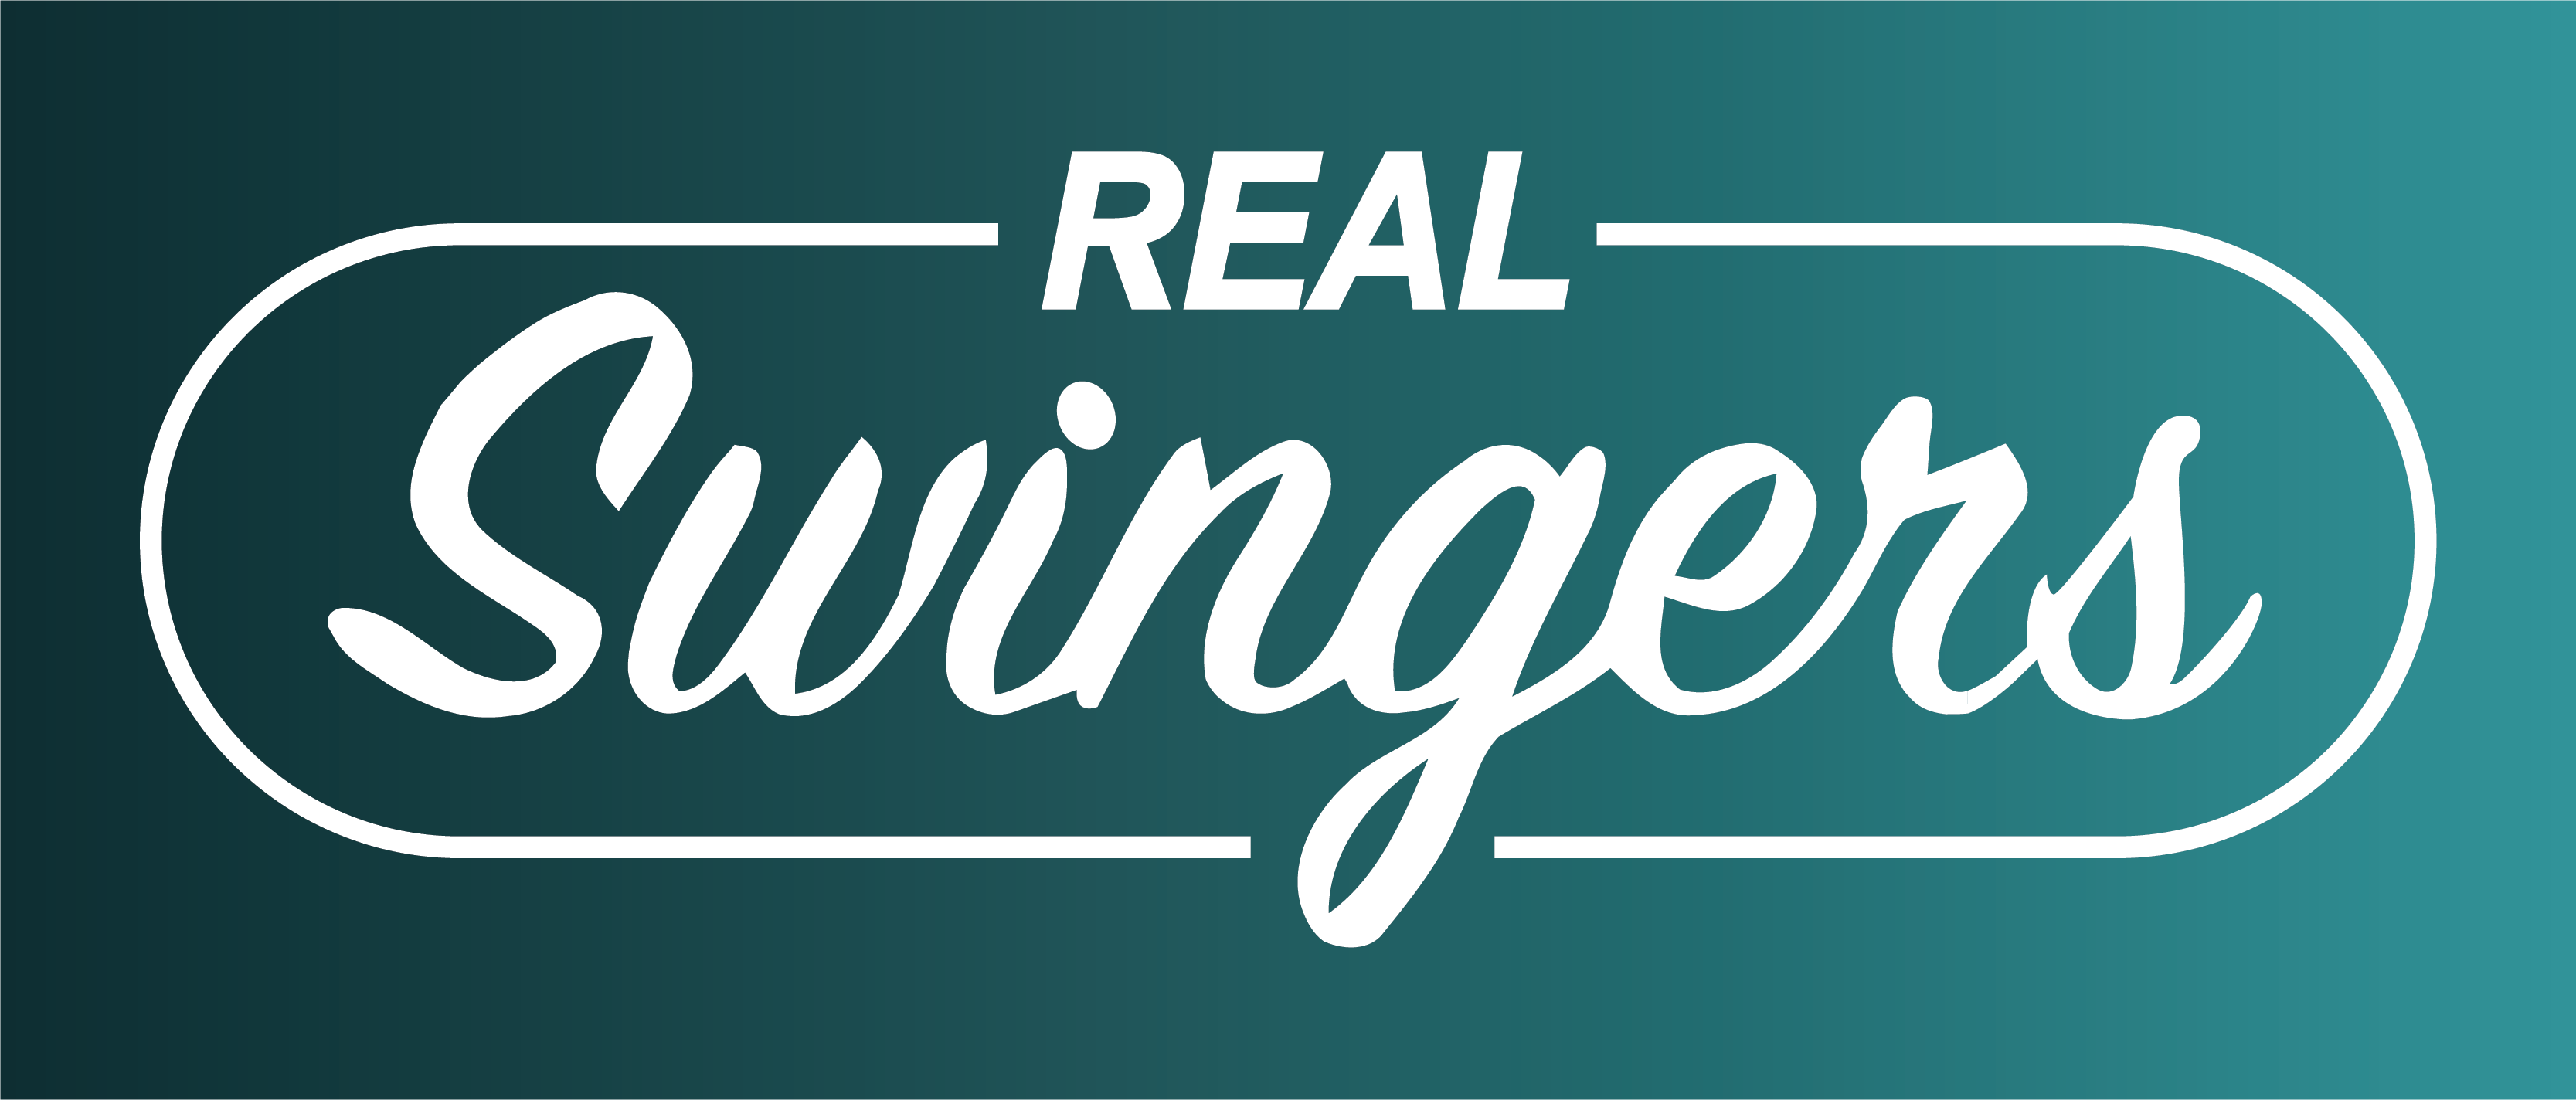 Real Swingers Logo